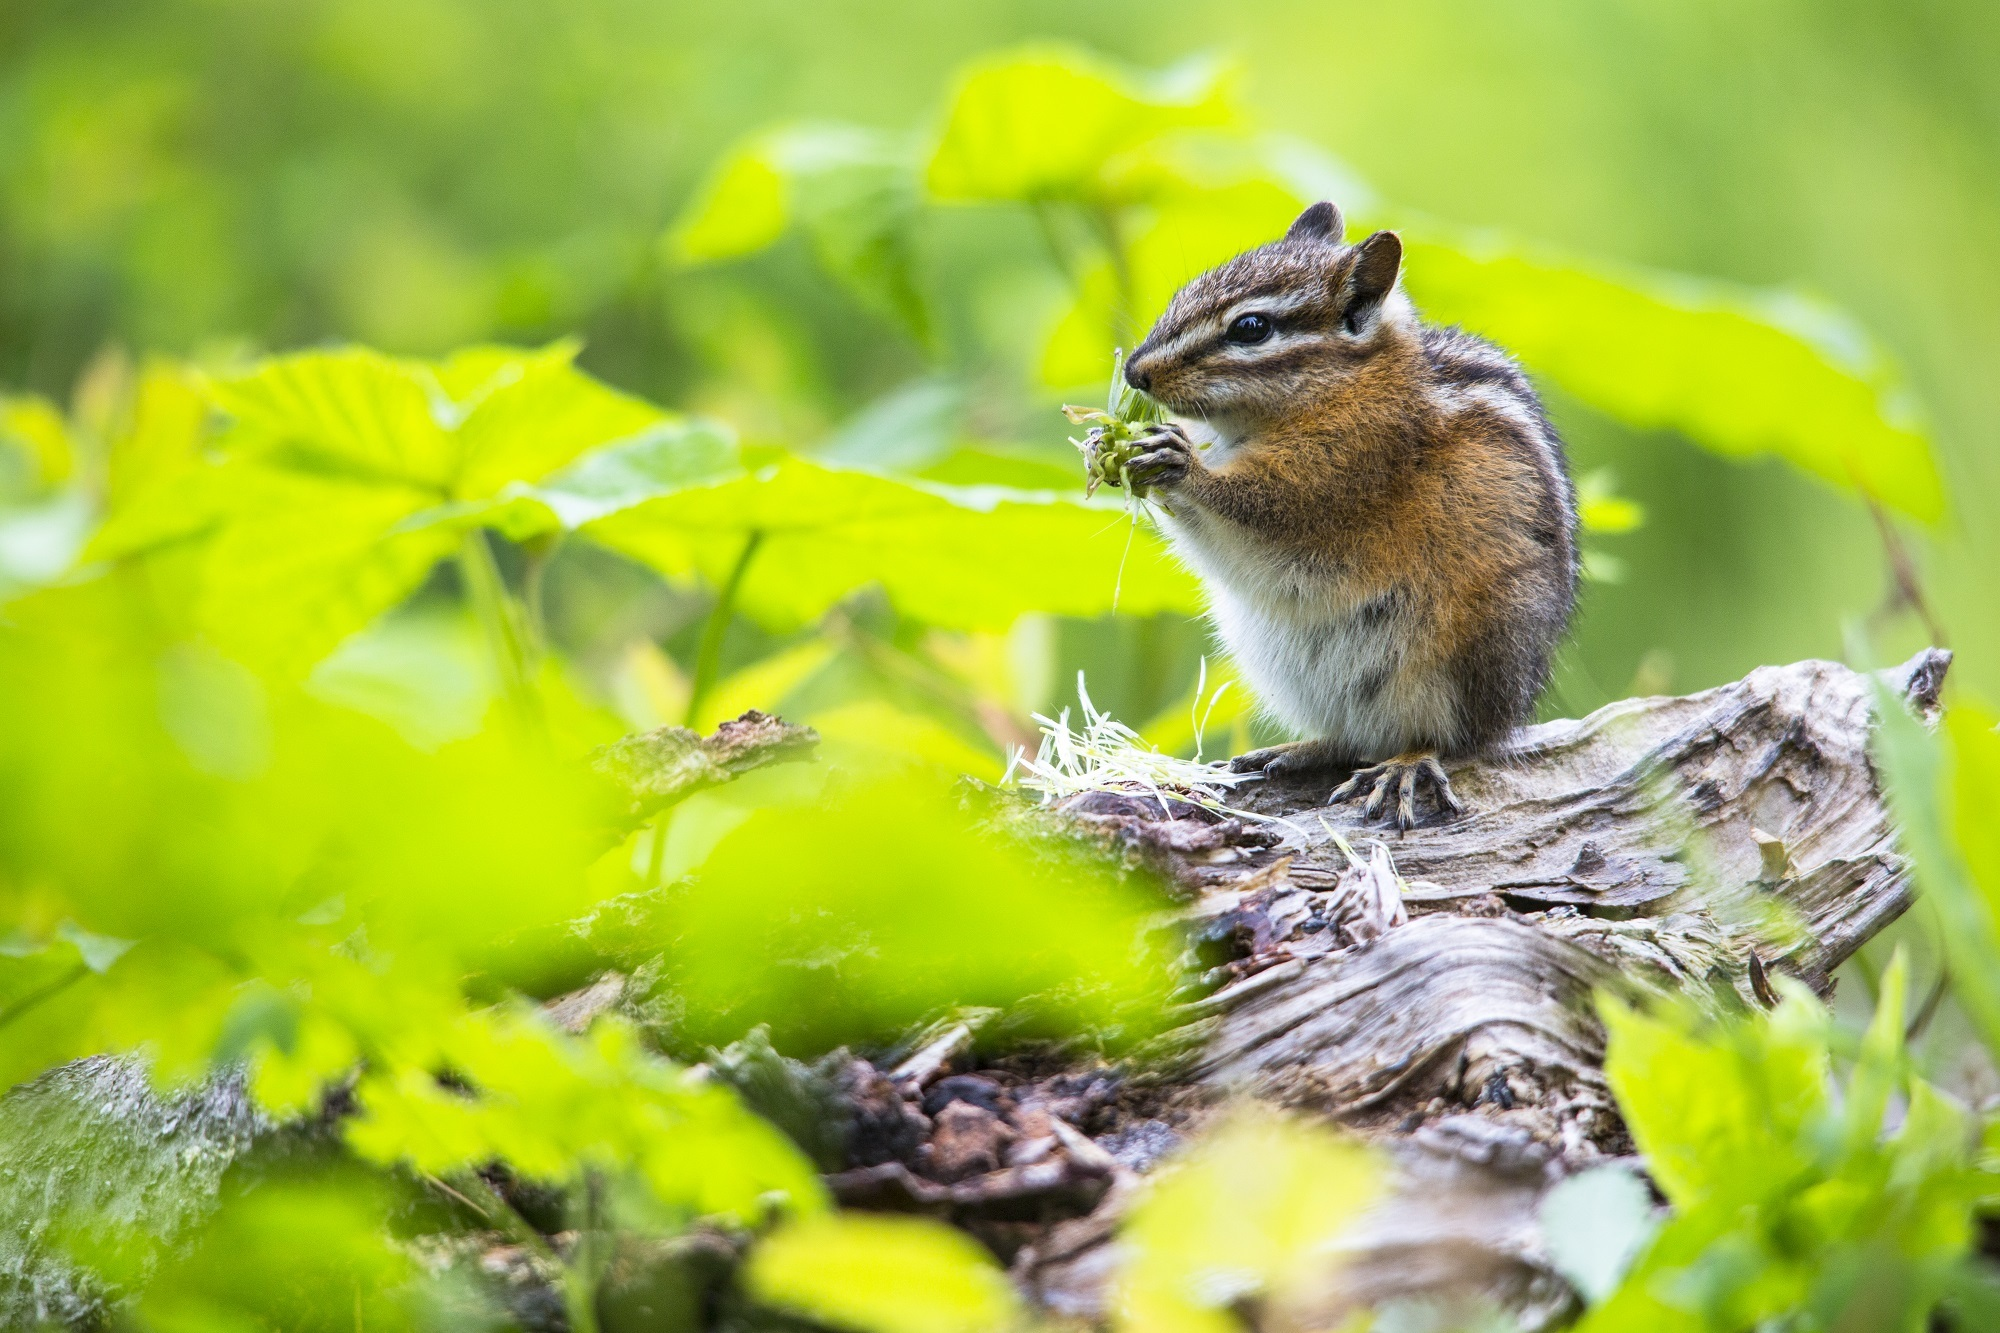 65648 download wallpaper Leaves, Animals, Food, Grass, Chipmunk screensavers and pictures for free